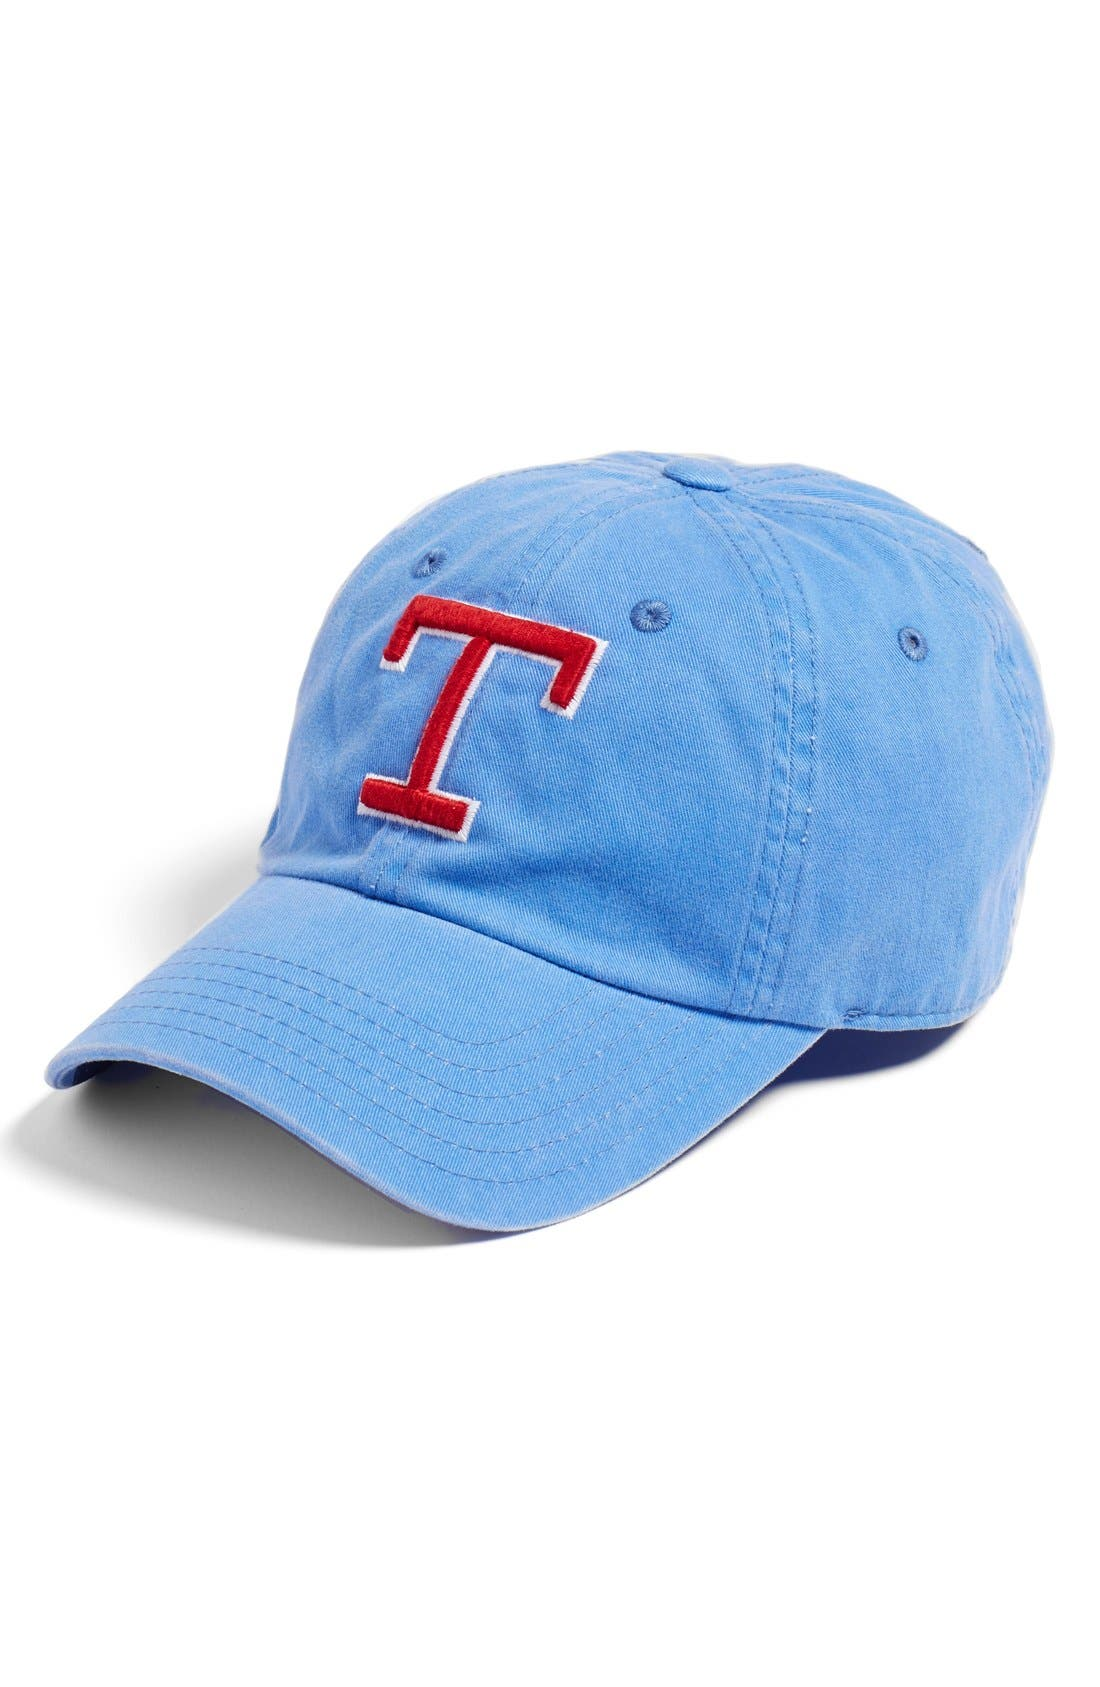 Main Image - American Needle New Raglan Texas Rangers Baseball Cap